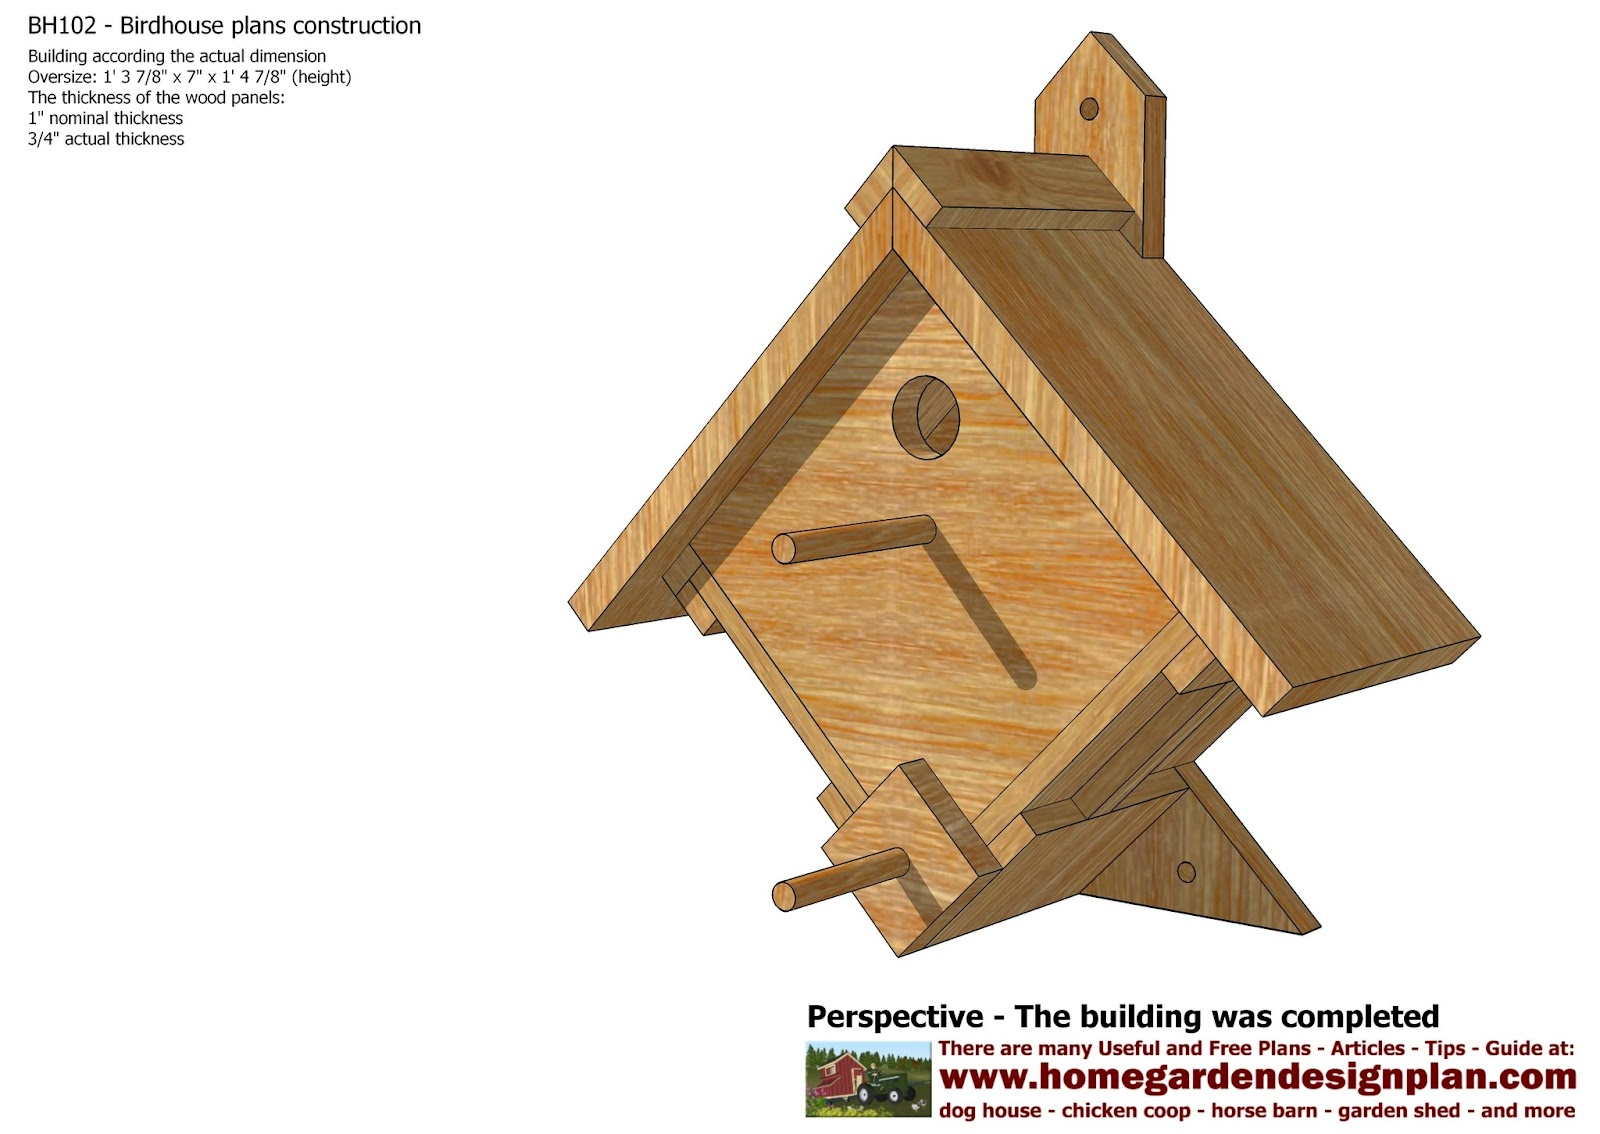 Mina bh102 bird house plans construction bird house for Building a quail house